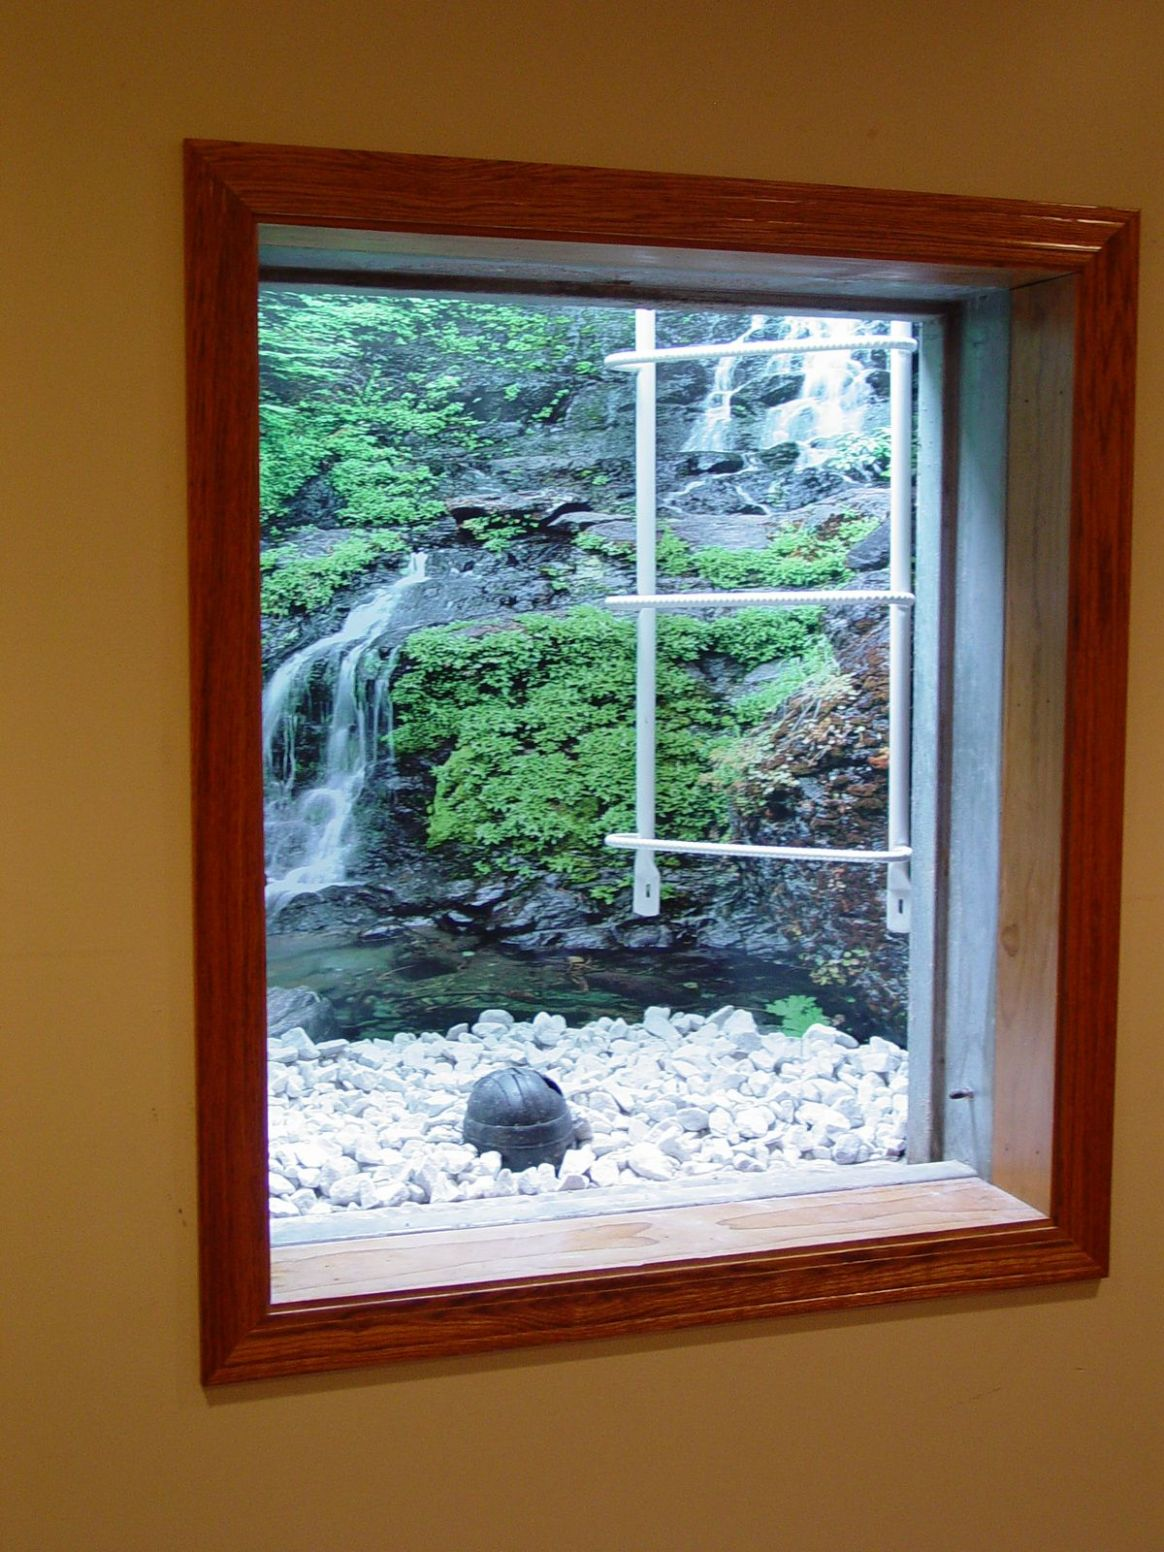 Creative Designs of Basement Window Covers for Your DIY Project ..